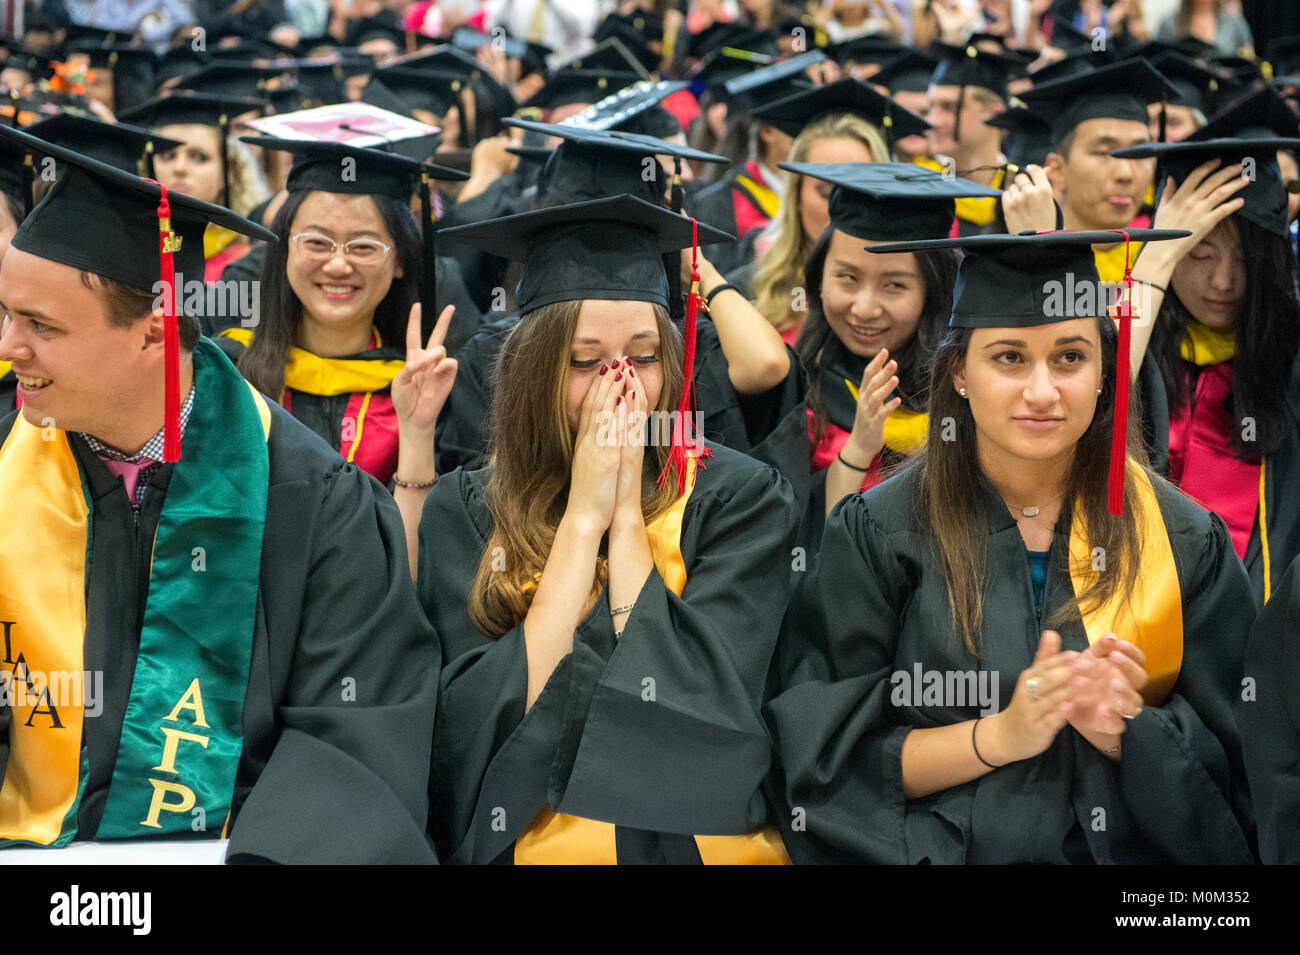 Young female graduate holds her face as she gets emotional amongst other college graduates, College Park, Maryland - Stock Image